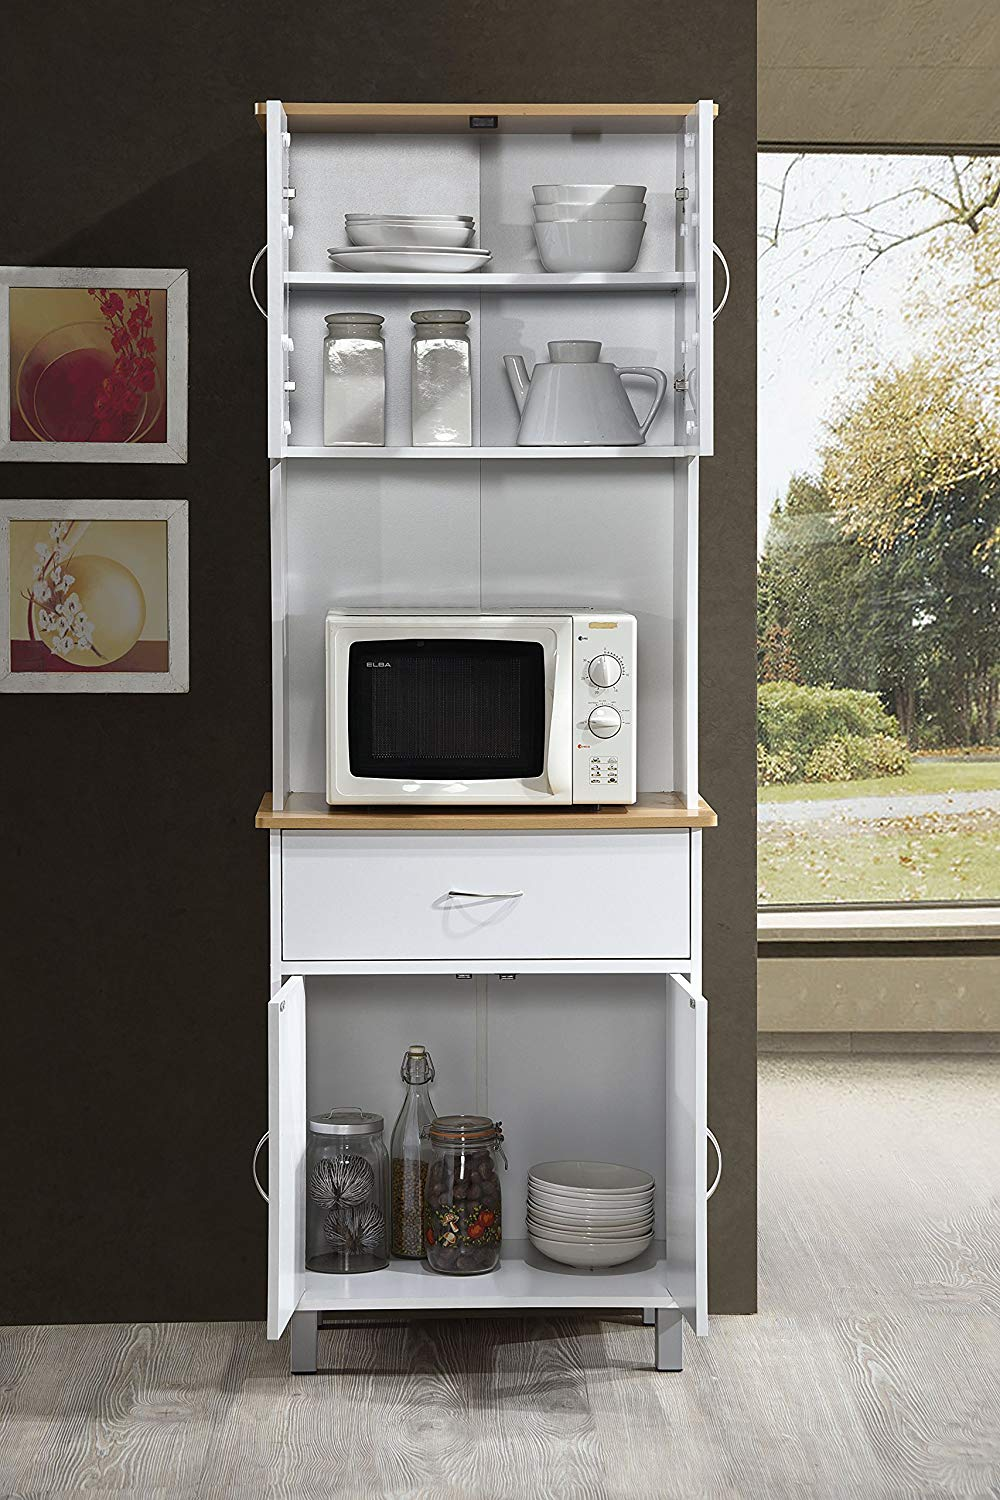 Hodedah Kitchen Cabinet - From $149.0100 to $185.9900 ...